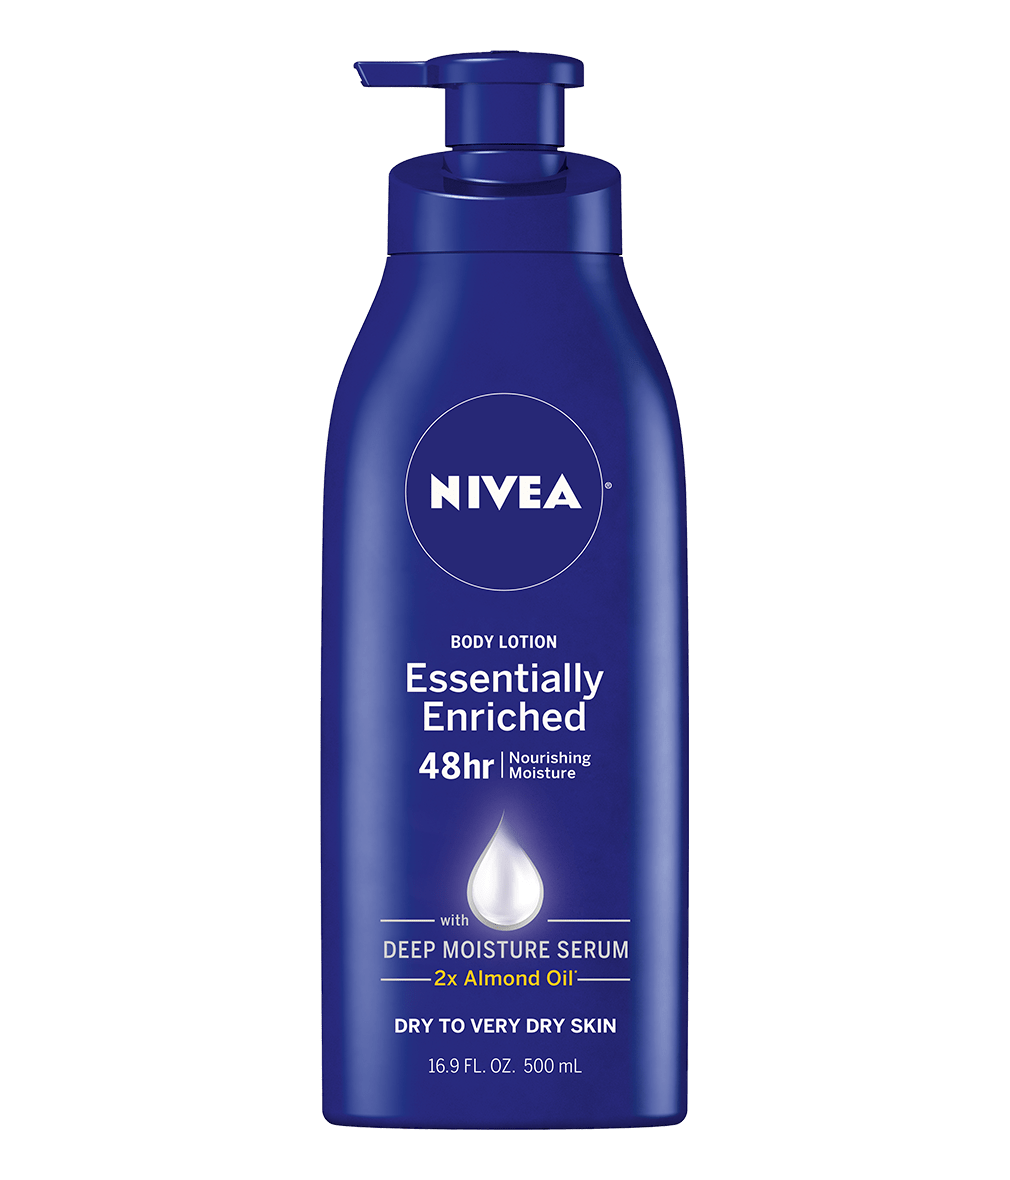 essentially enriched body lotion for dry to very dry skin nivea